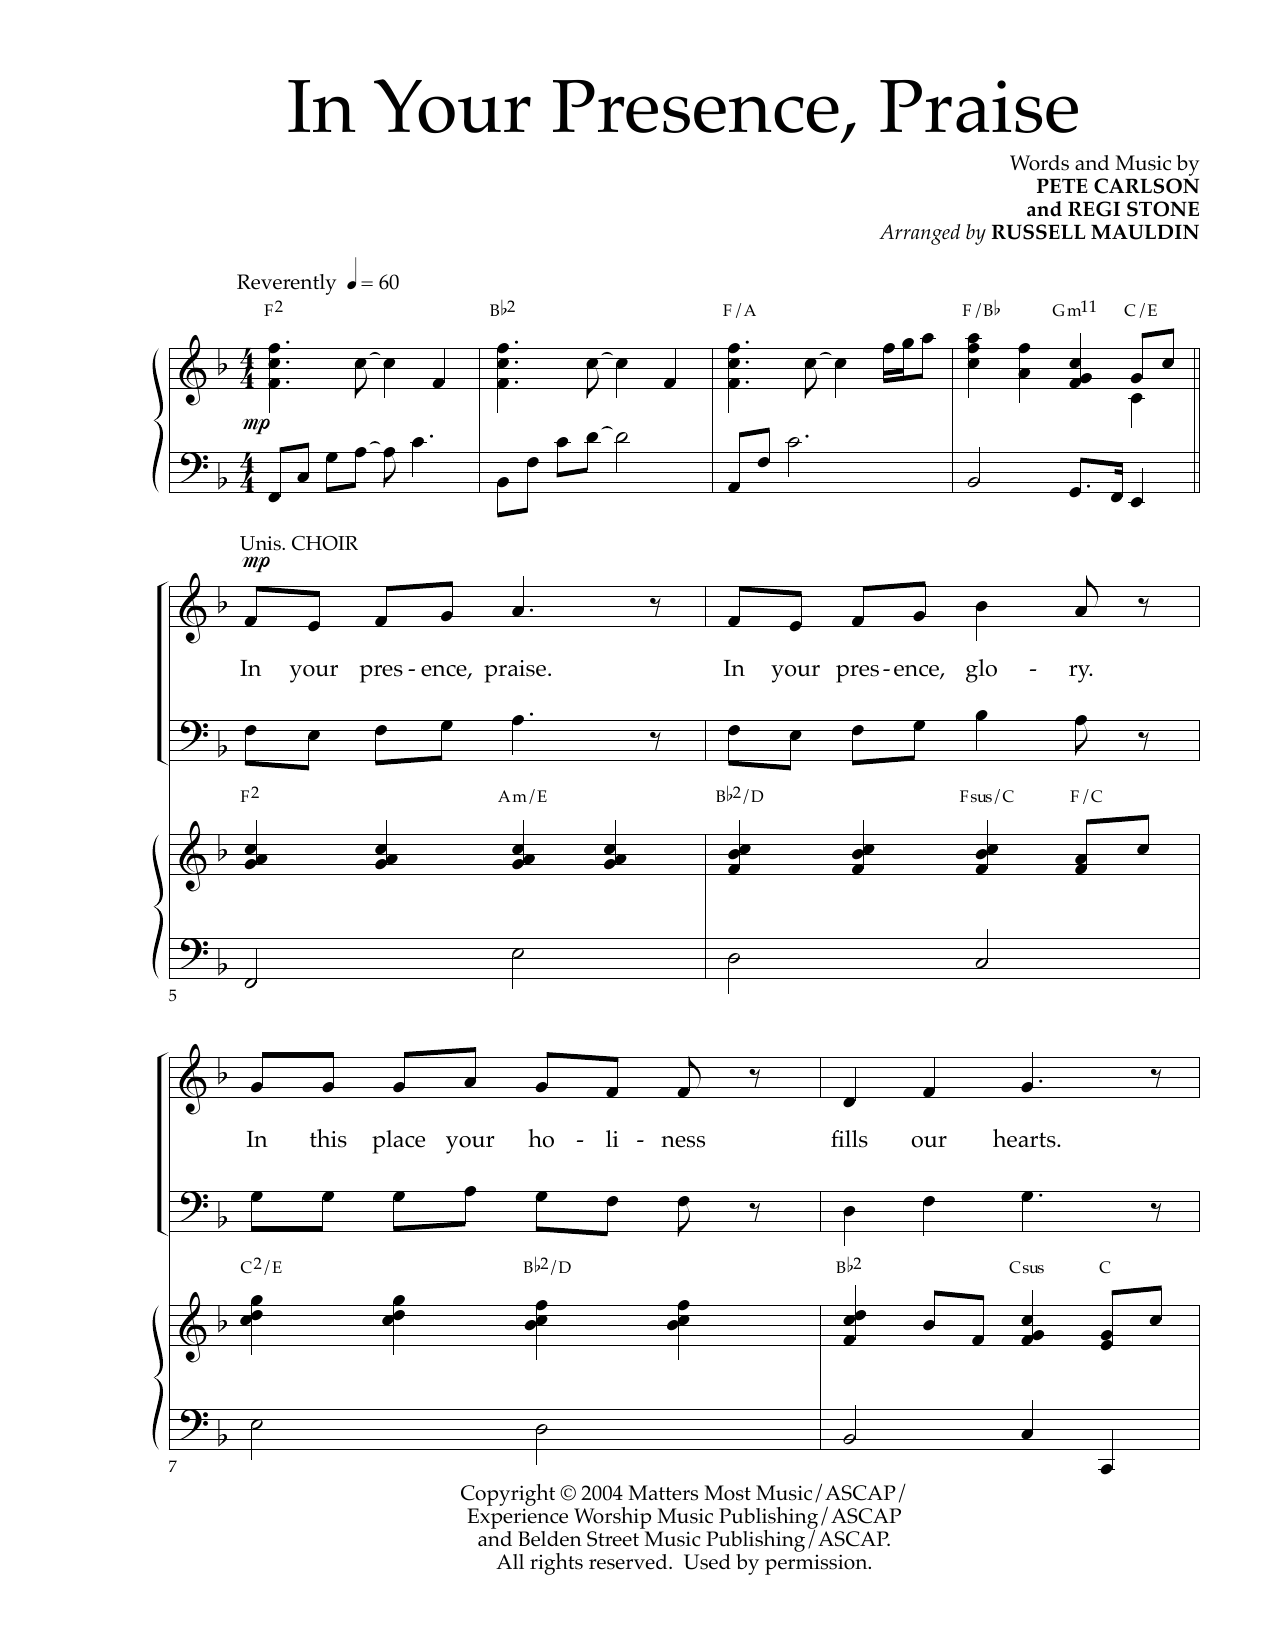 Pete Carlson and Regi Stone In Your Presence, Praise (arr. Russell Mauldin) sheet music notes and chords. Download Printable PDF.